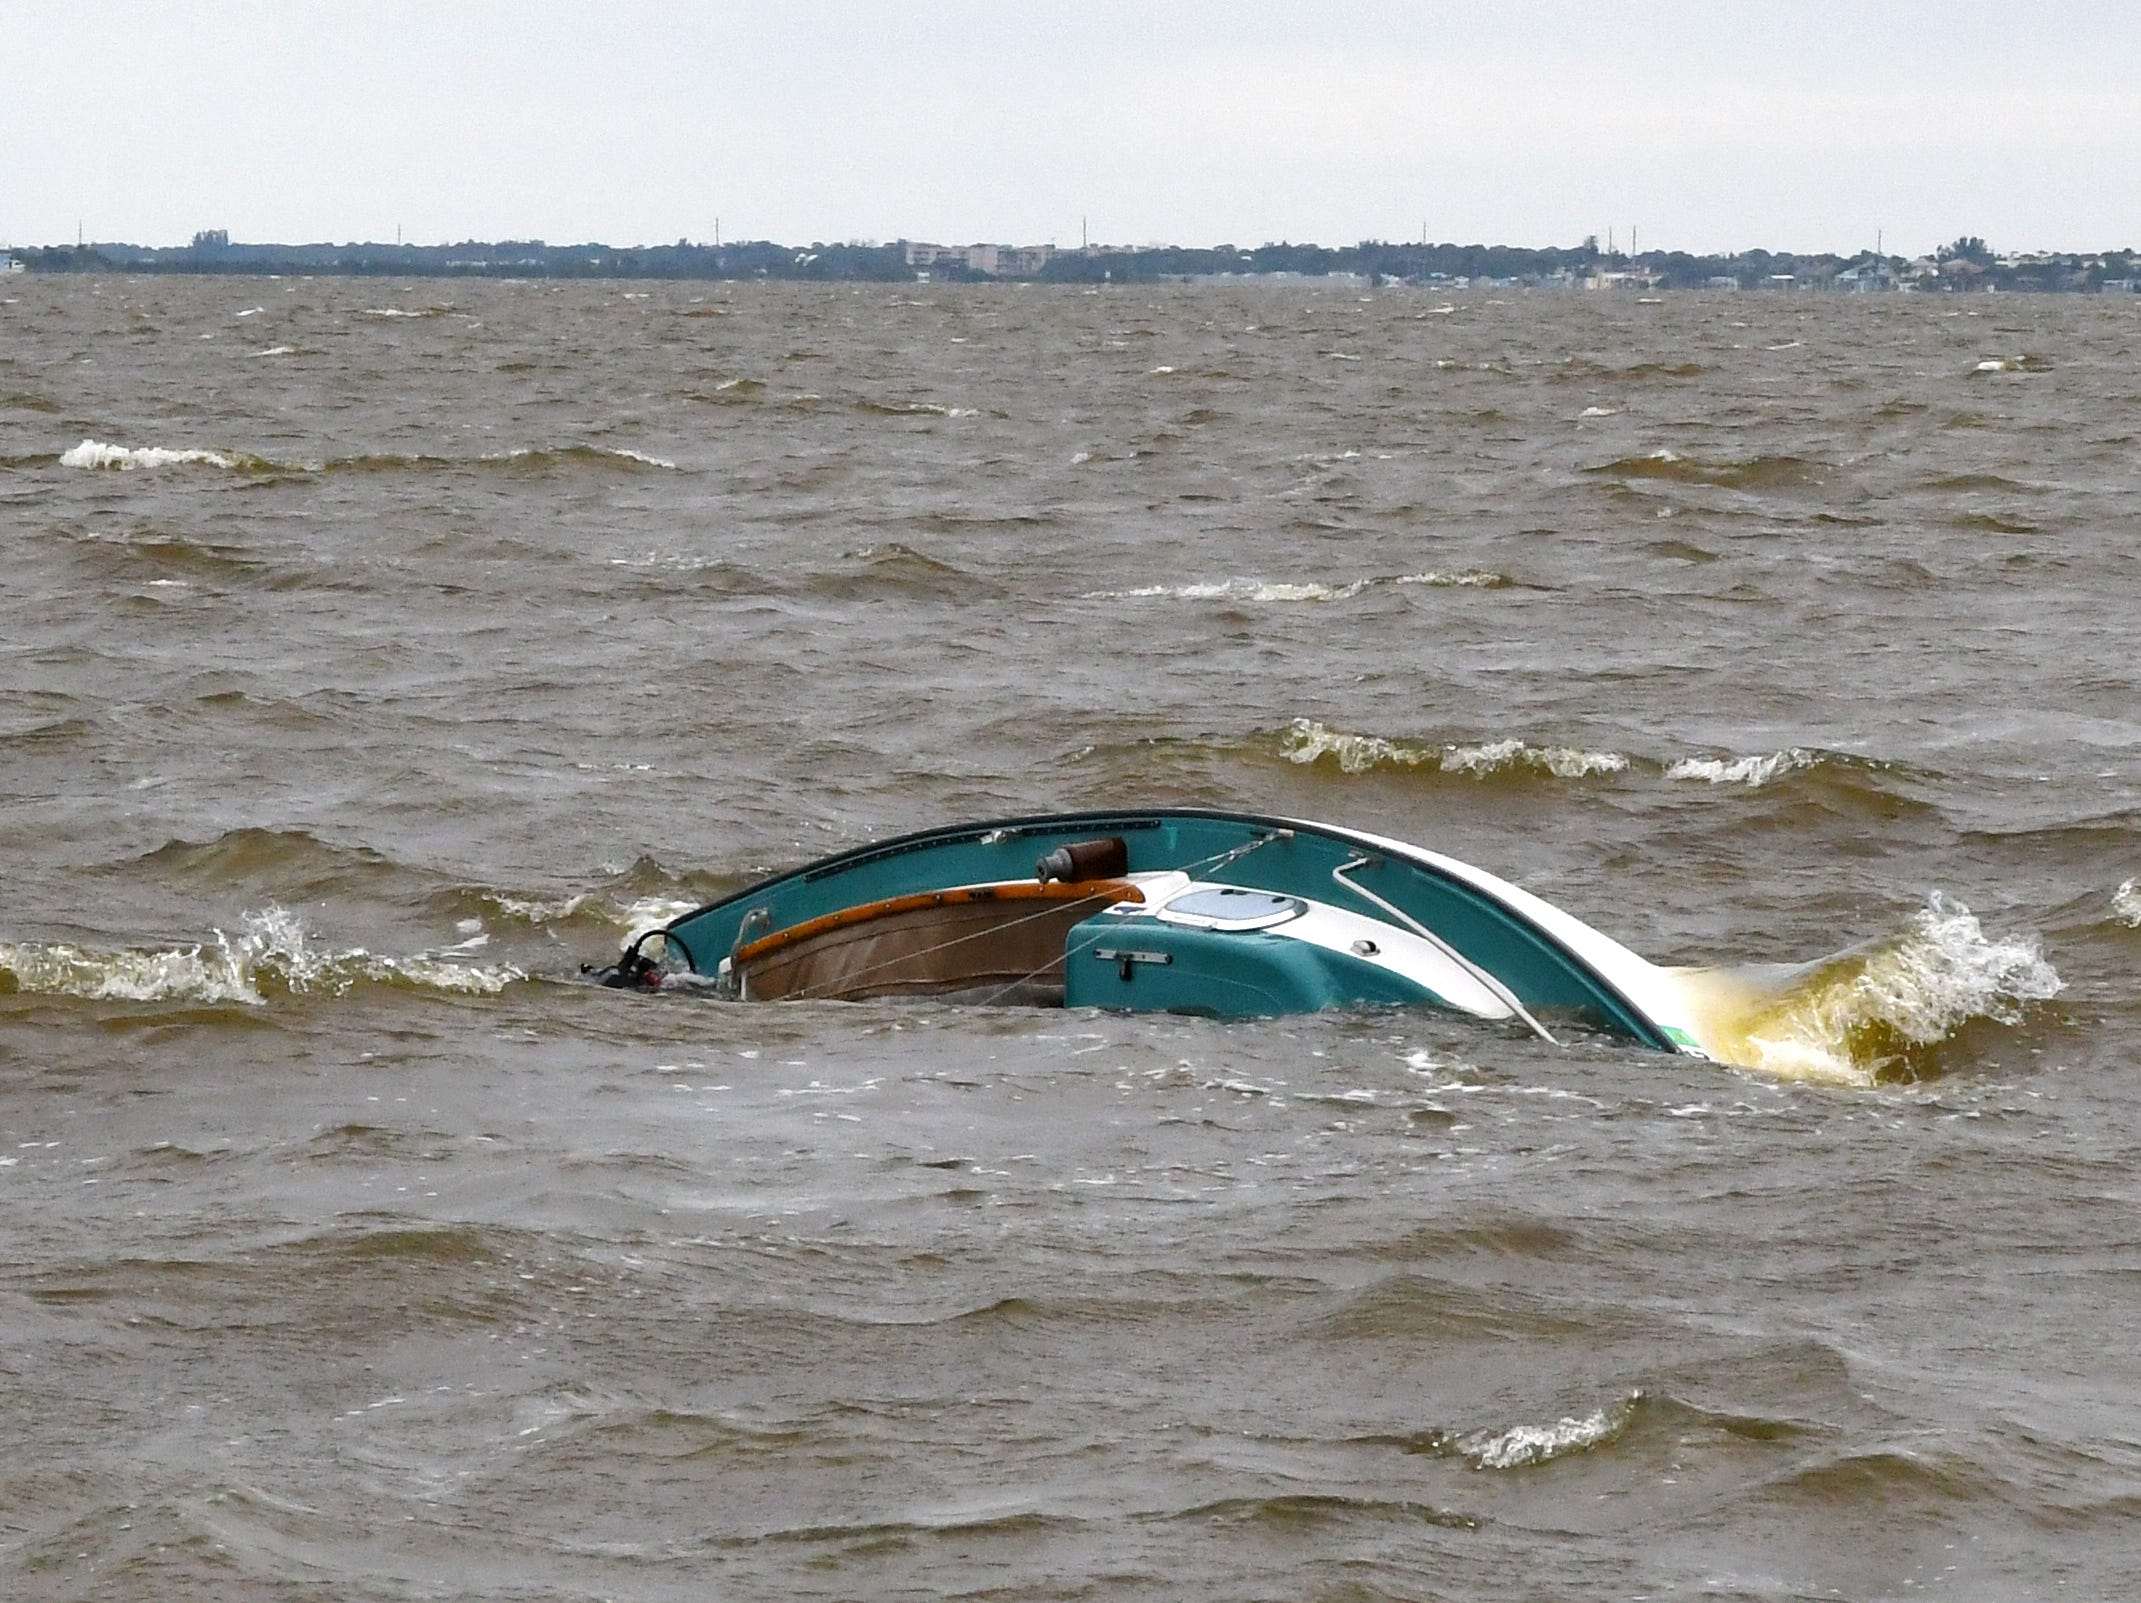 A 20 foot sailboat overturned  in the Banana River near Merritt island on Sunday, April 14, 2019.  Four men were rescued and uninjured. The capsized craft drifted closer to shore near State Road 528.